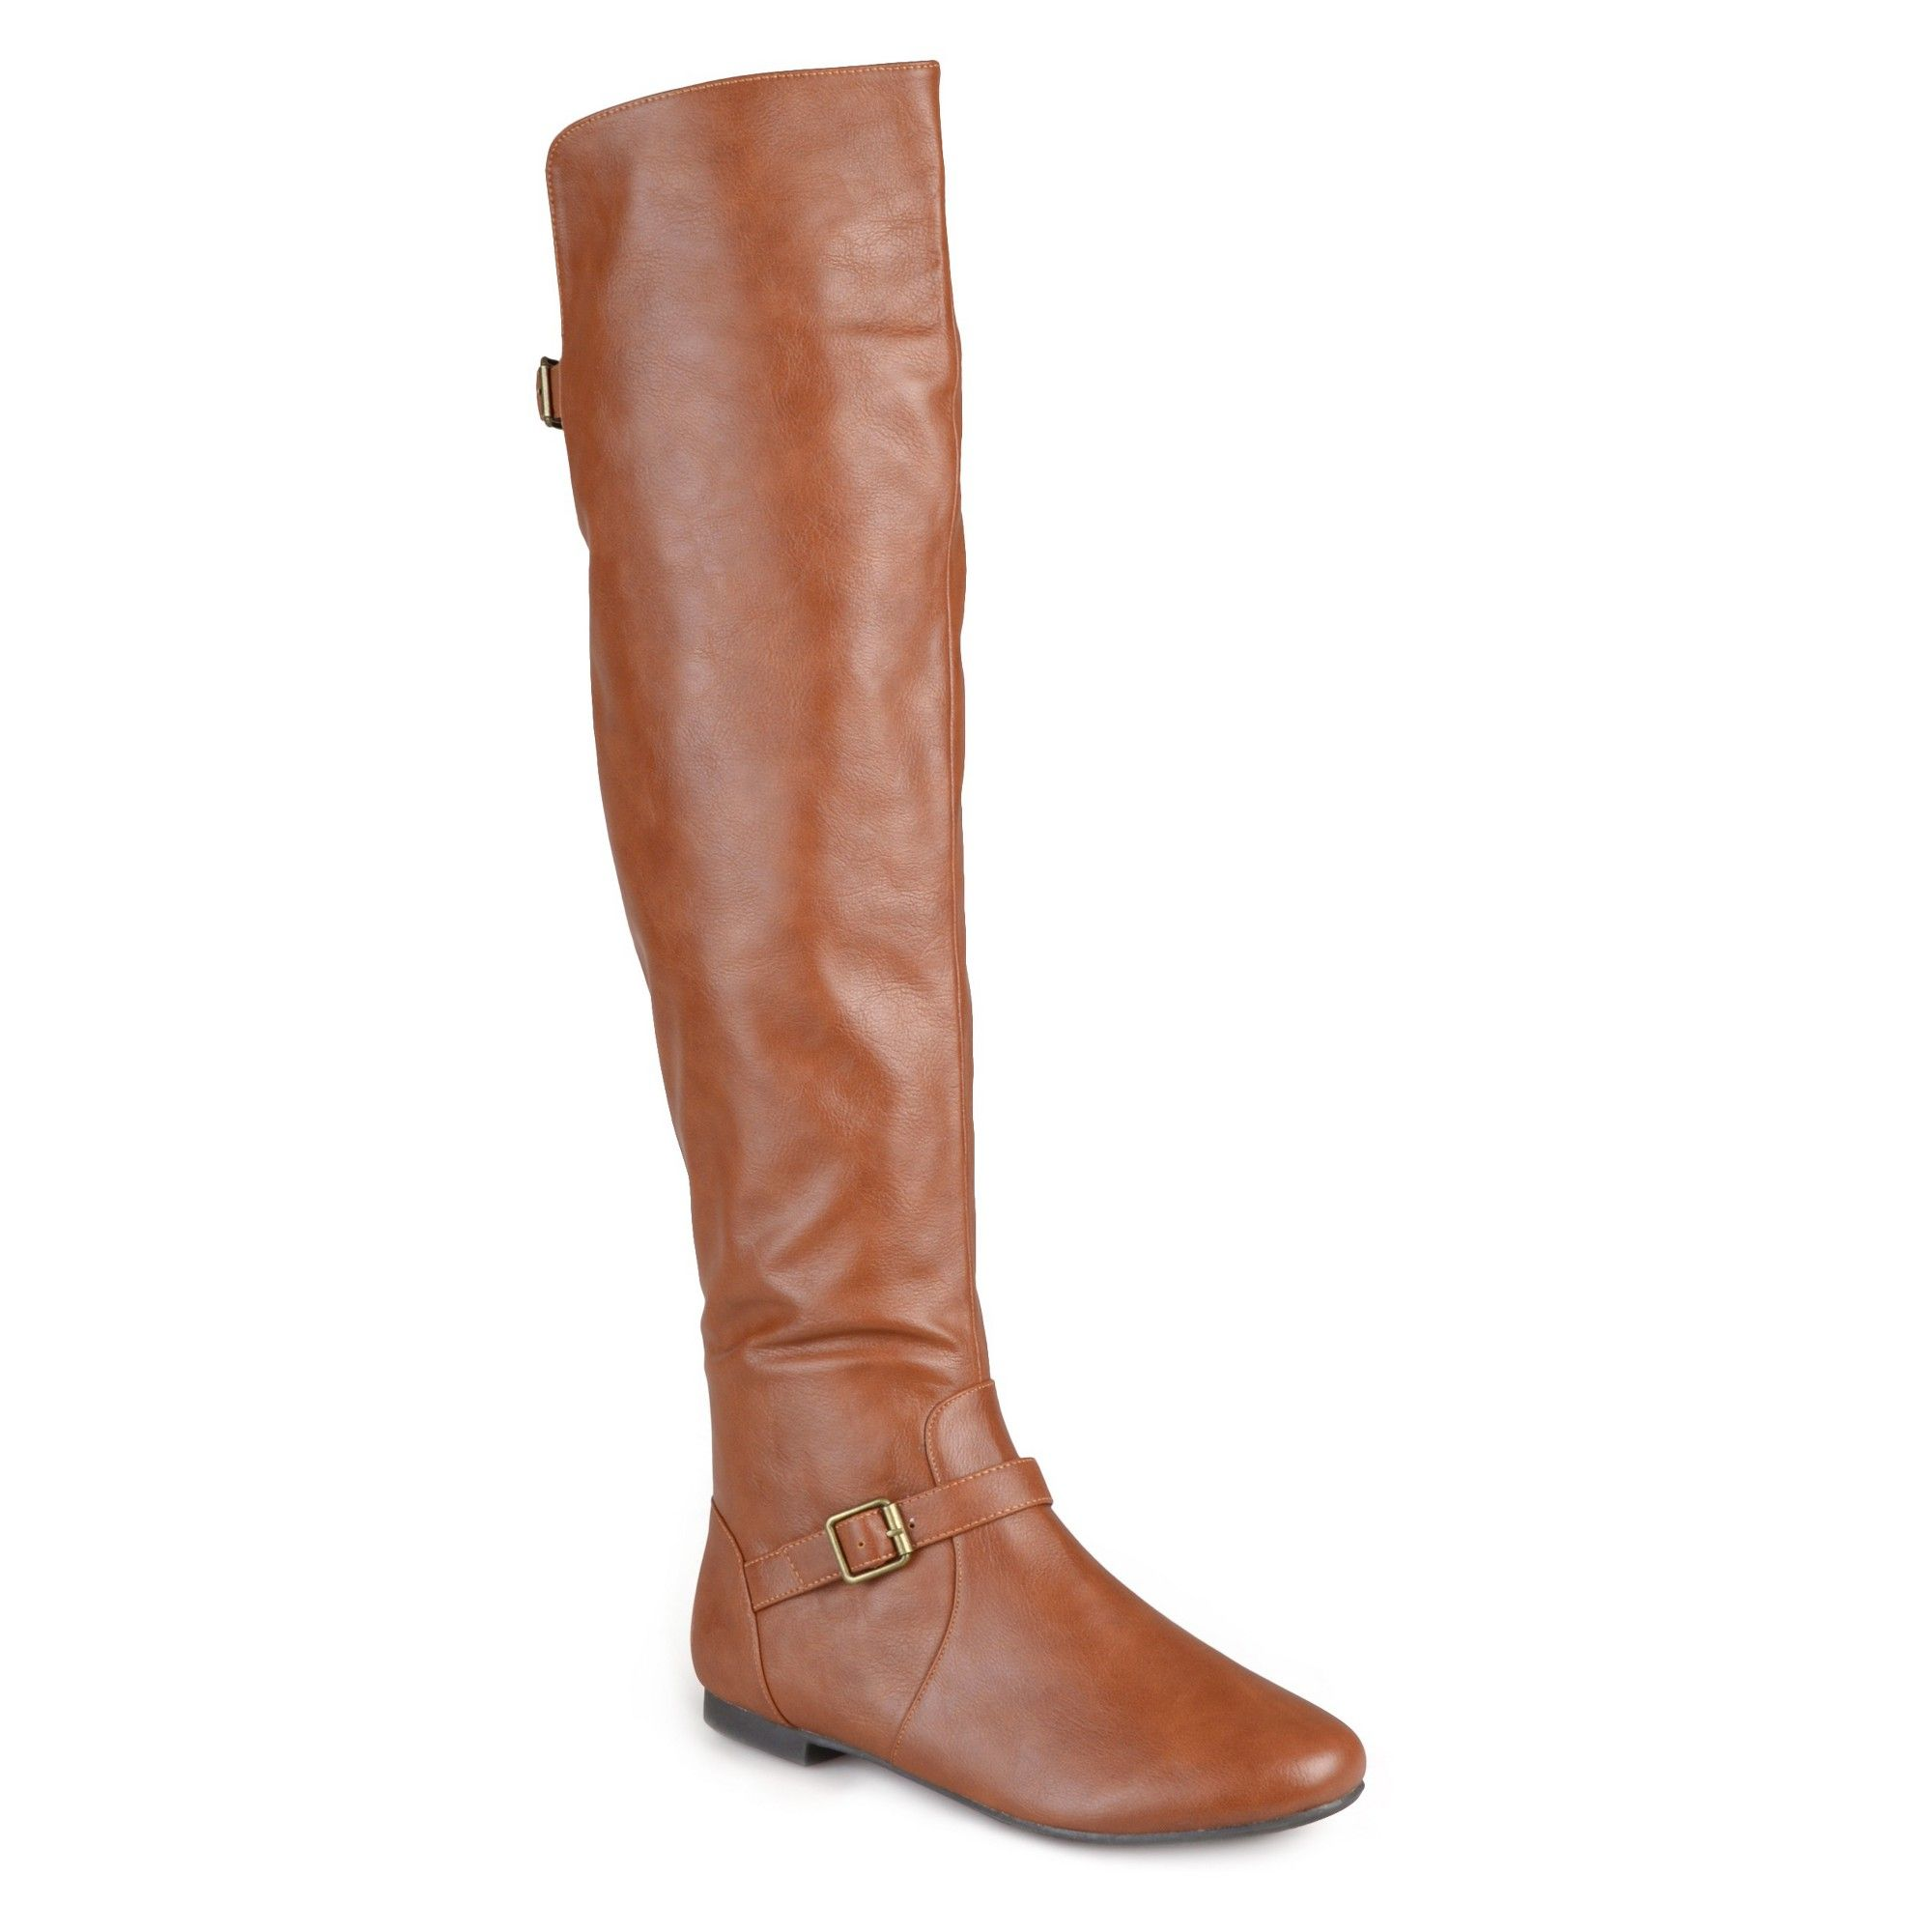 7014abfba850 Women s Journee Collection Tall Riding Boots - Chestnut 9